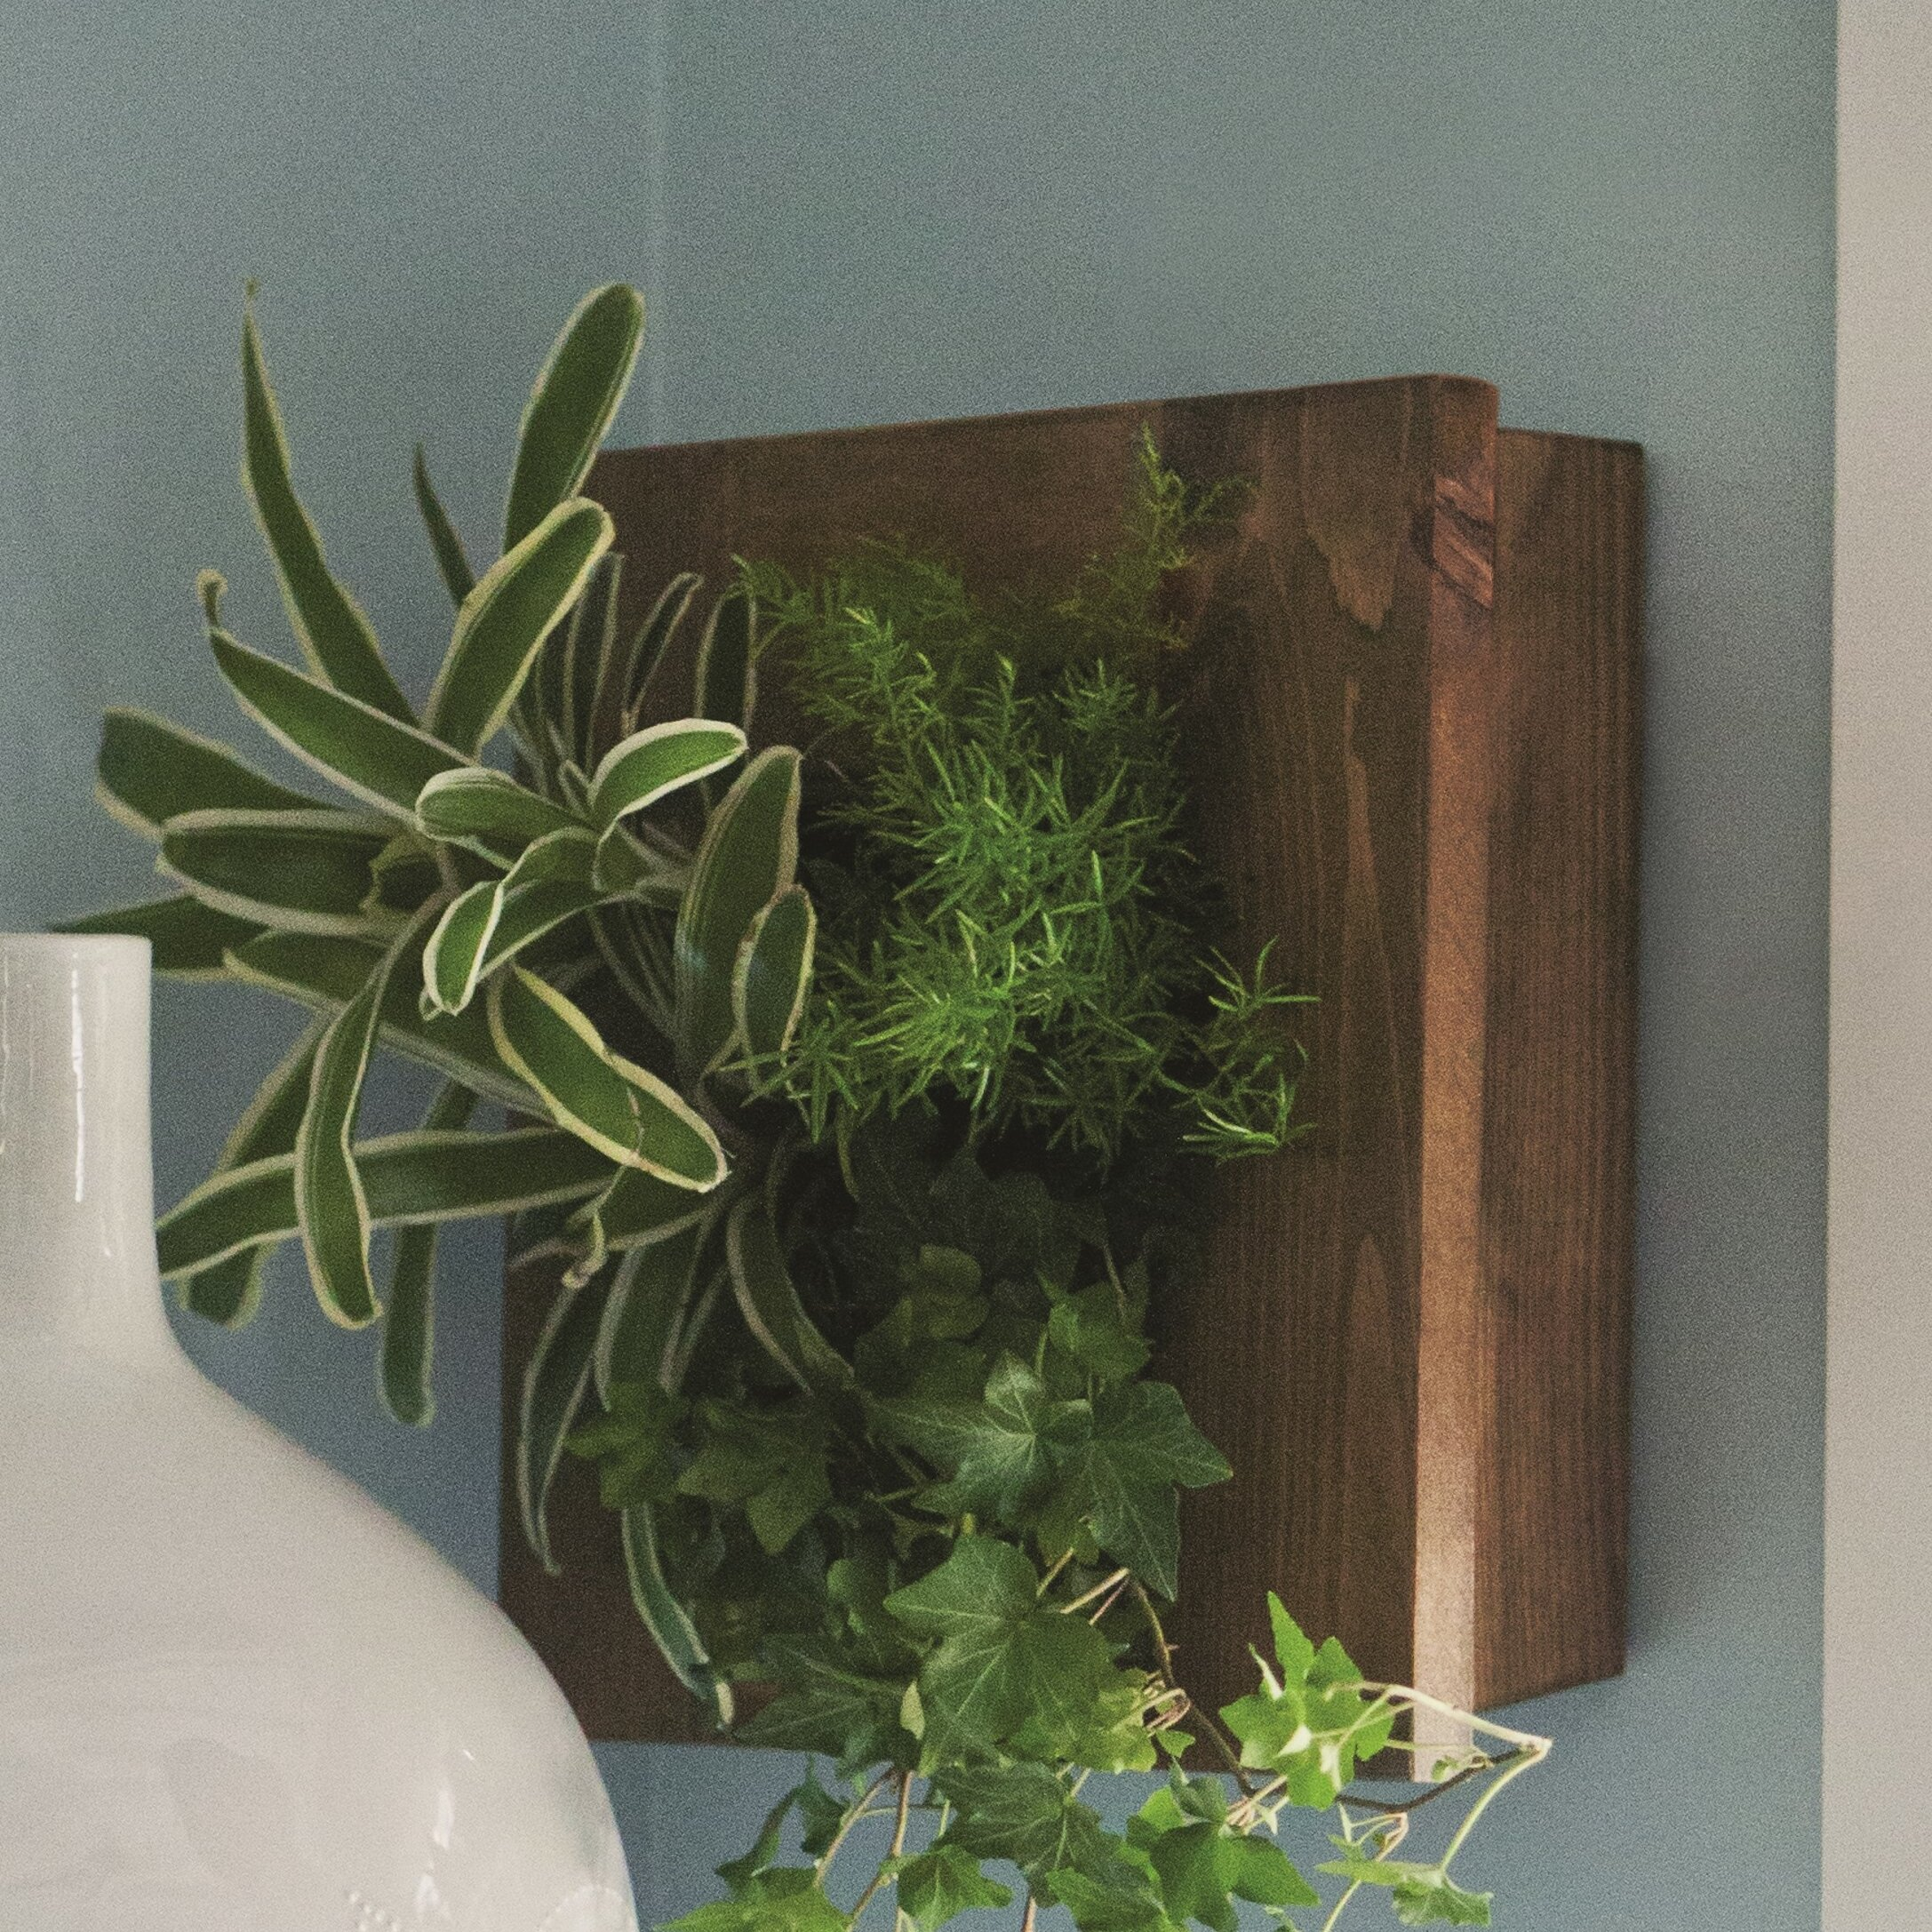 Hegeman Reclaimed Wood Wall Planter Reviews